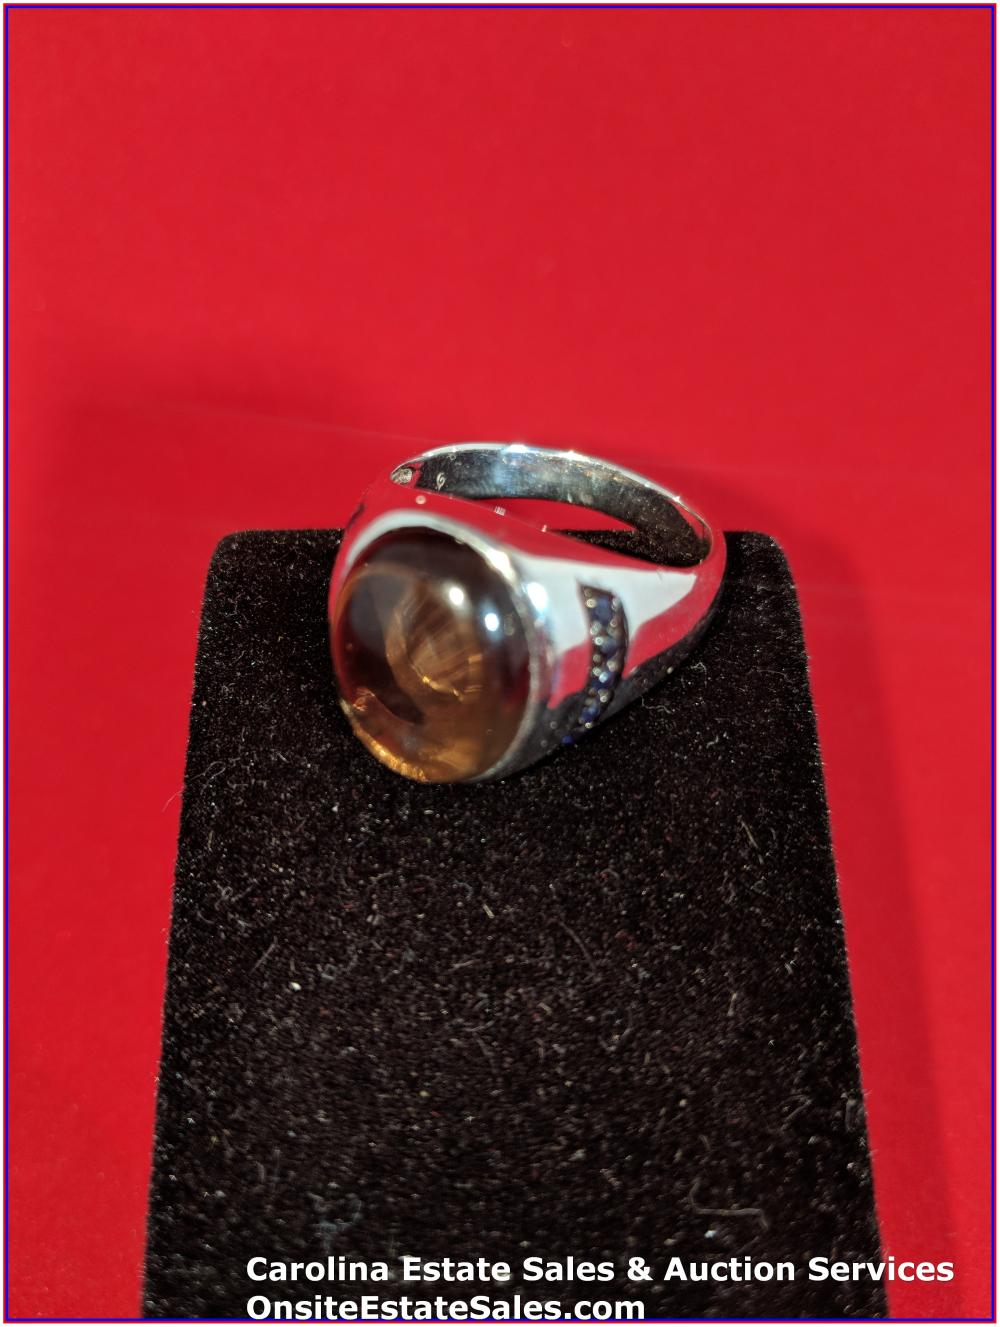 925 Gem Sterling Ring 9 Grams Total Weight Includes Stone